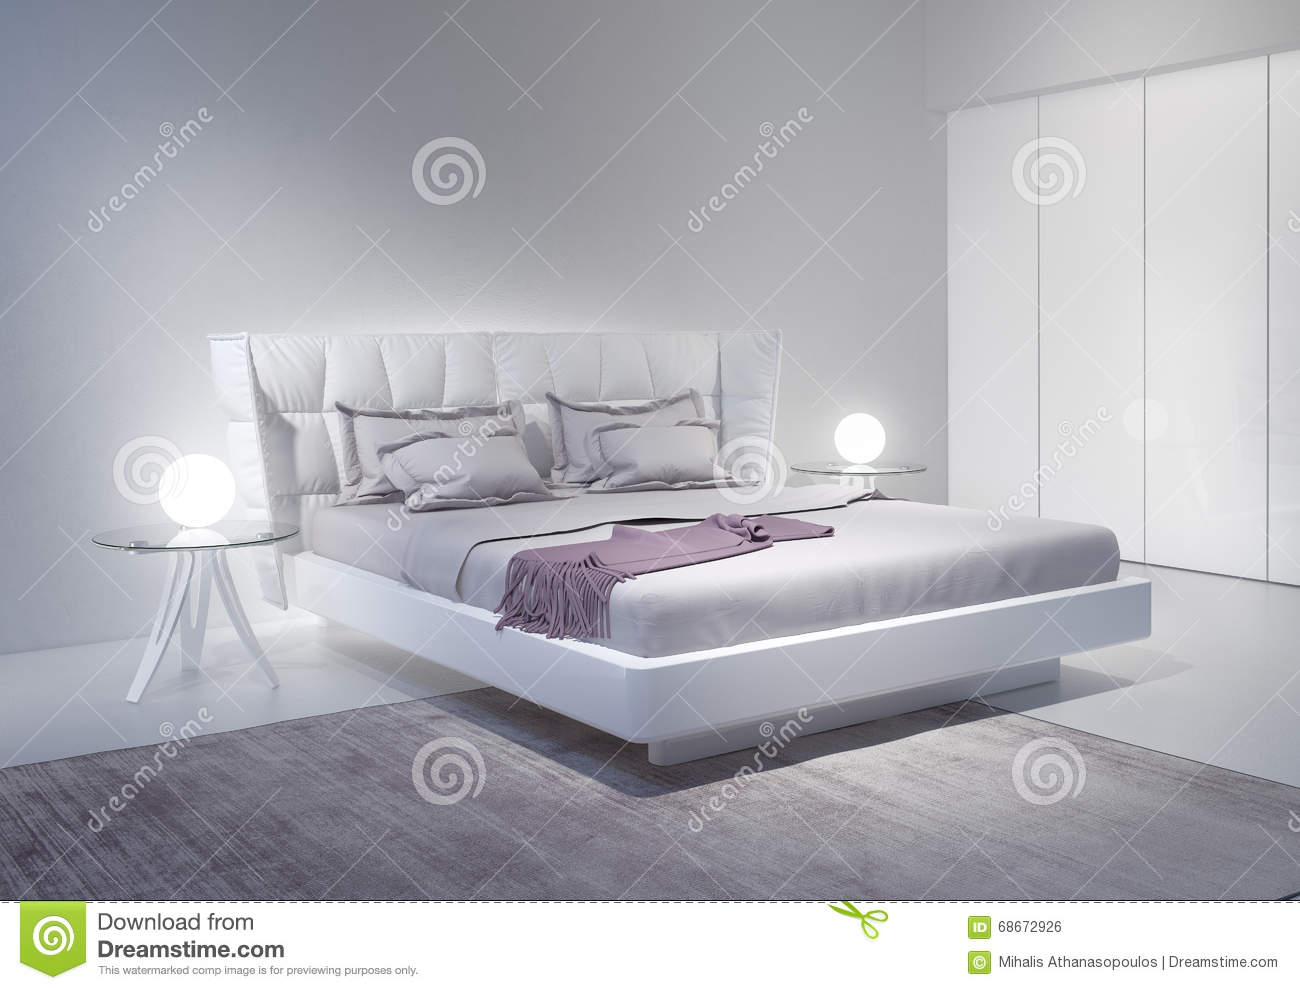 Modern white bedroom interior with violet accents